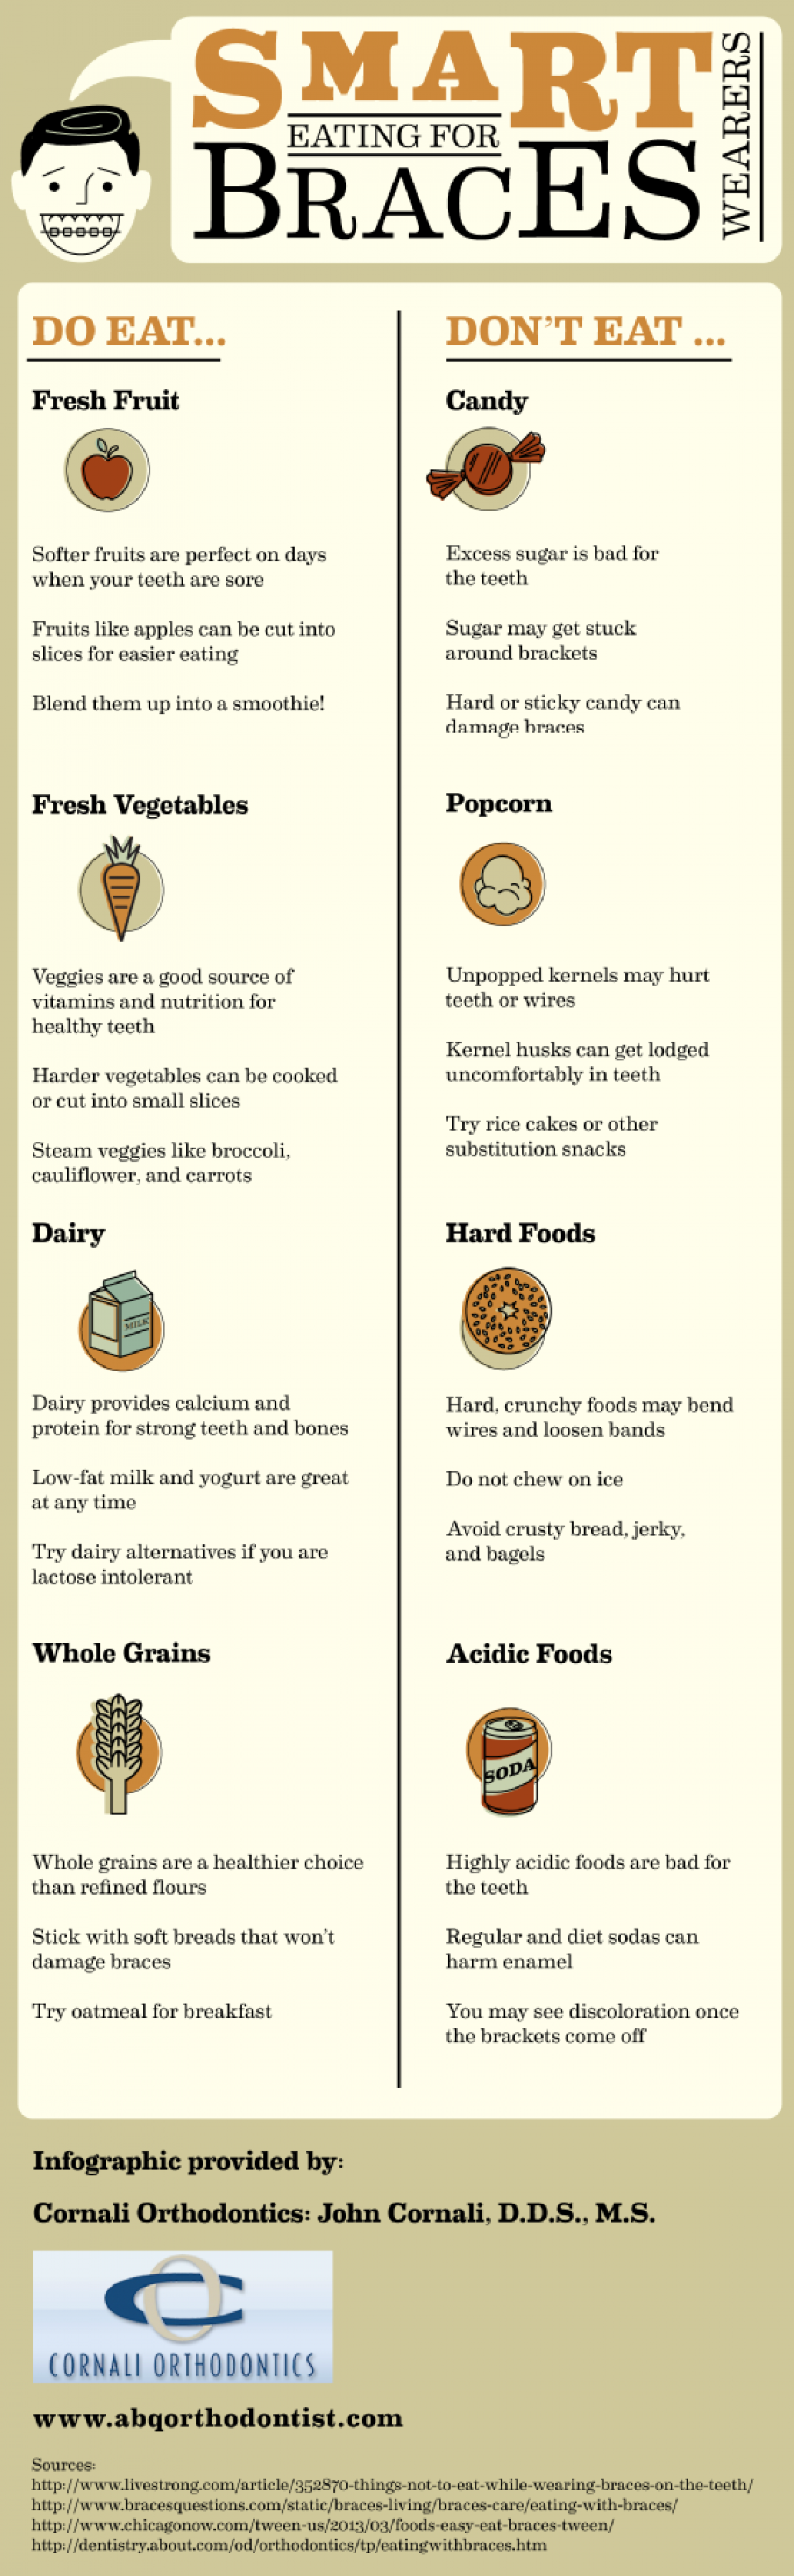 Smart Eating for Braces Wearers Infographic